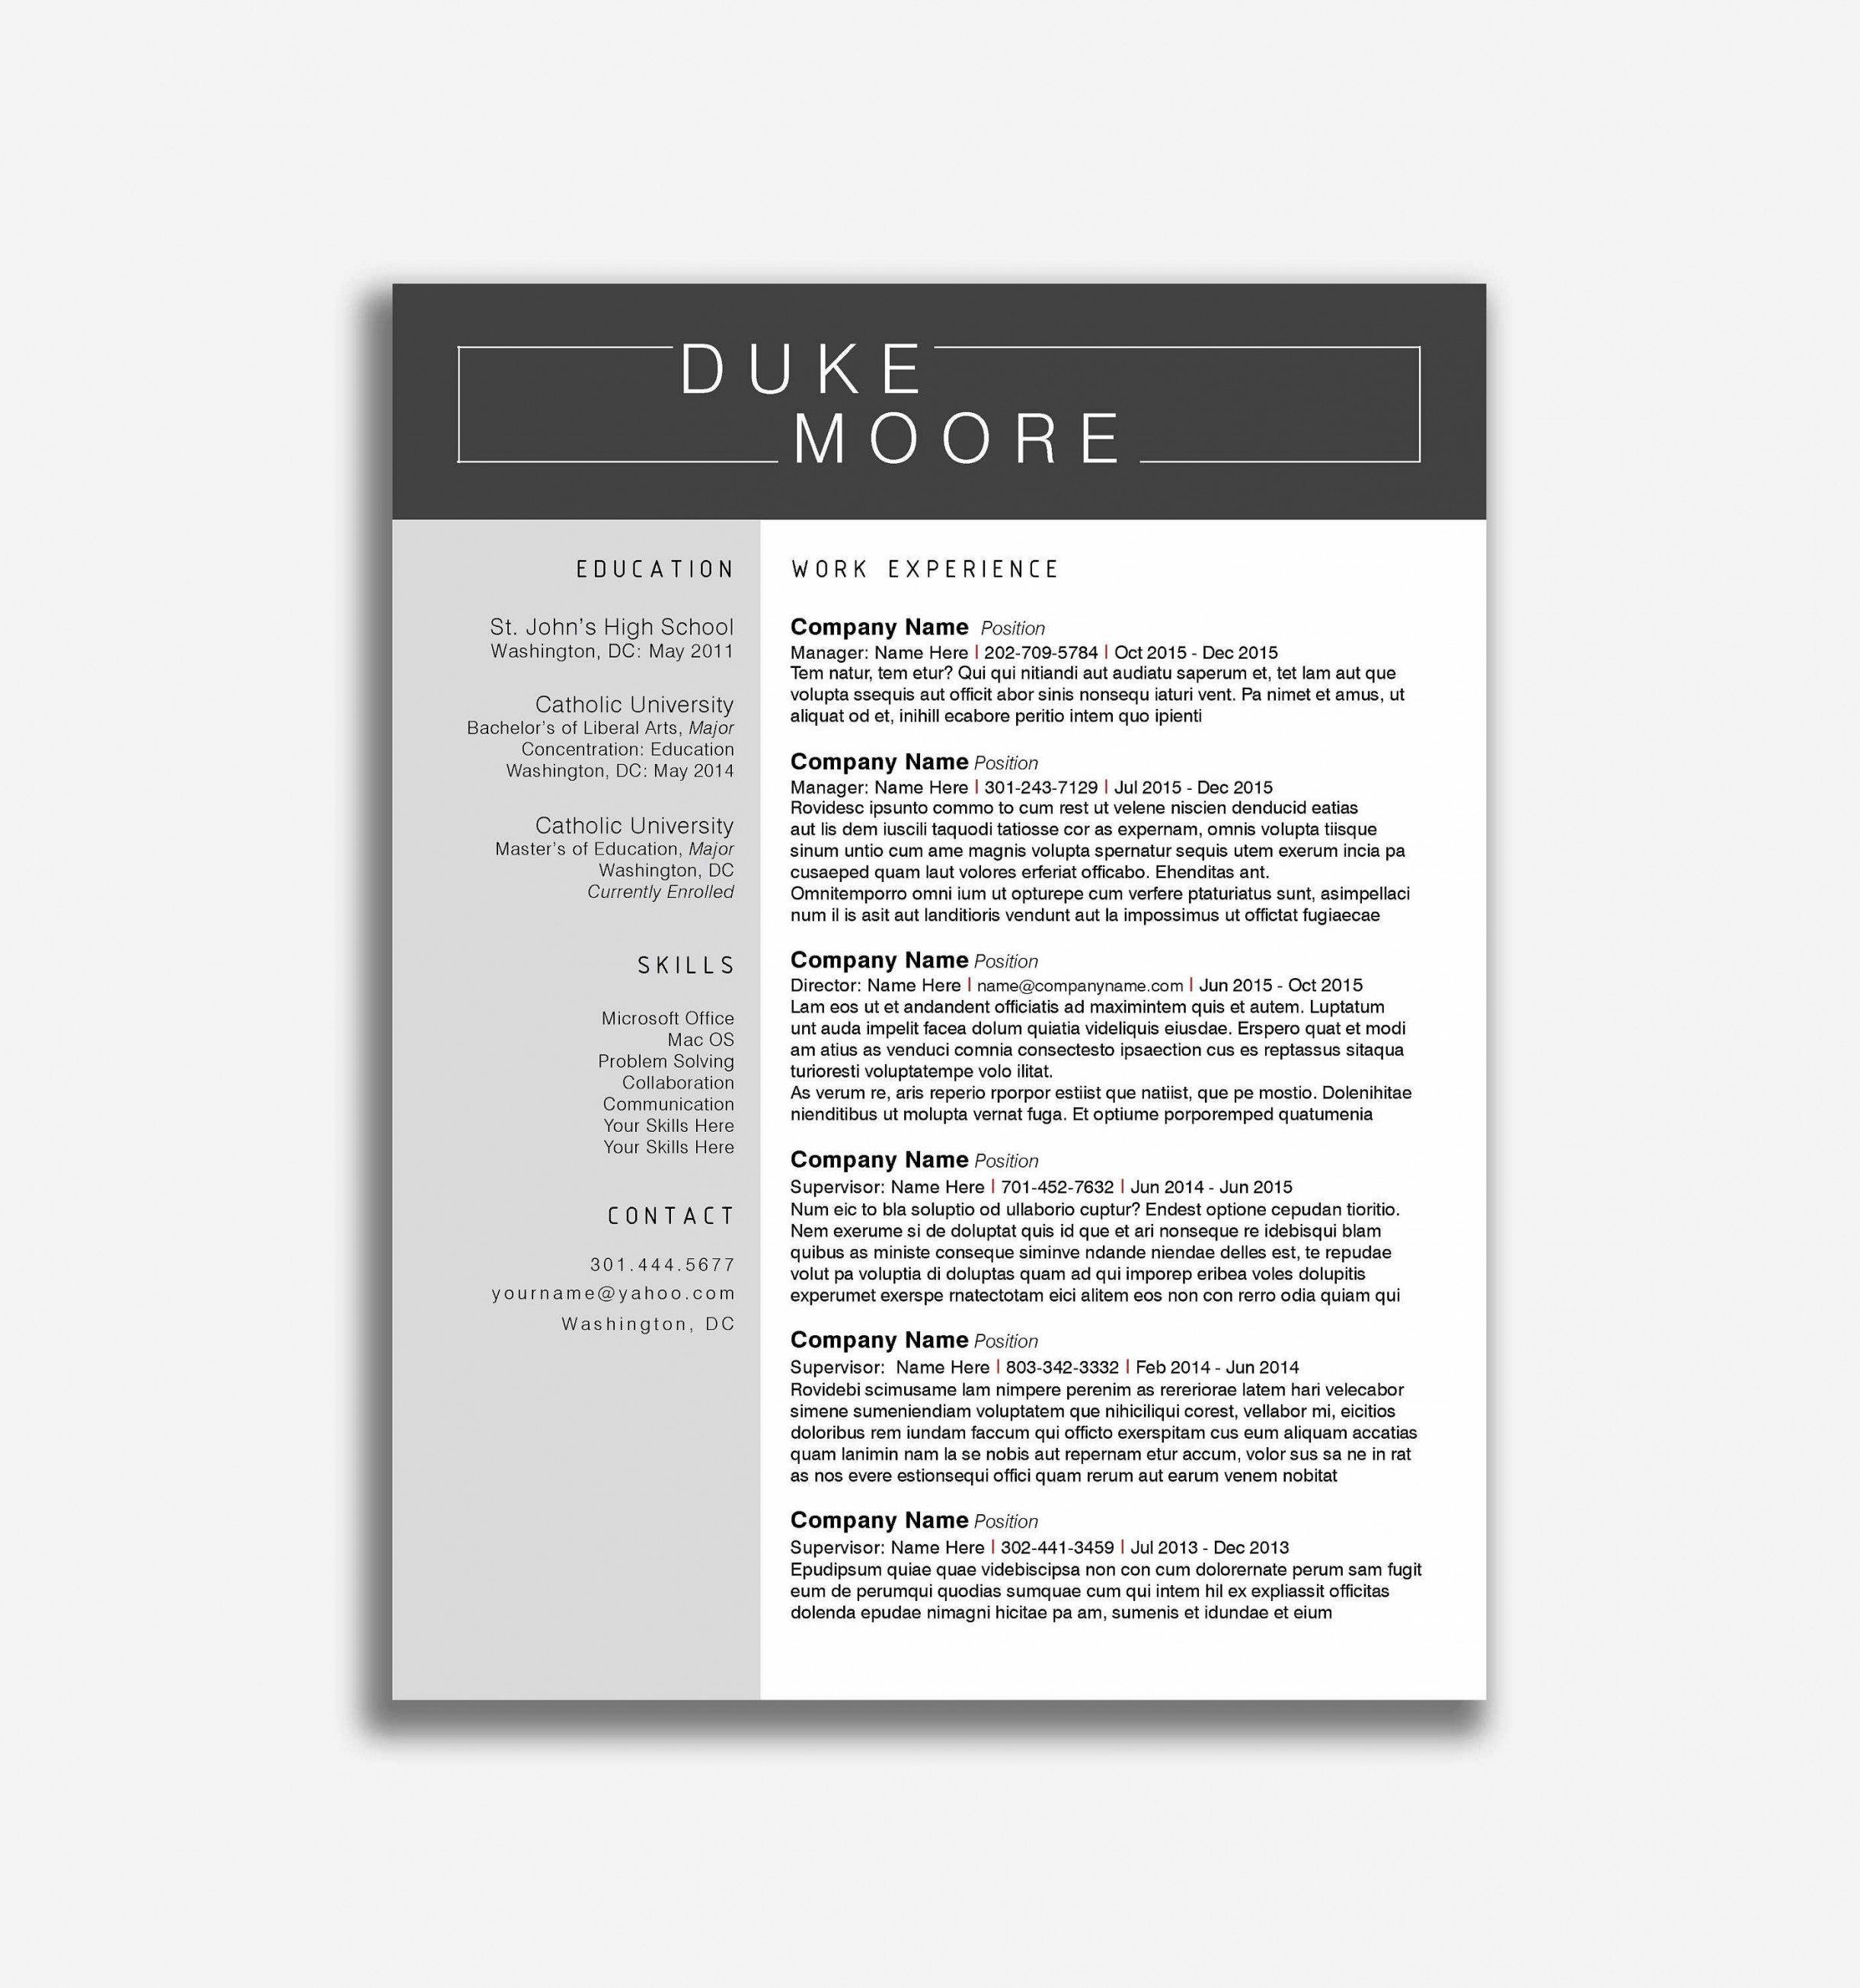 Resume Services Near Me Beautiful Resume Writers Near Me Resume Template Word Resume Template Free Project Manager Resume